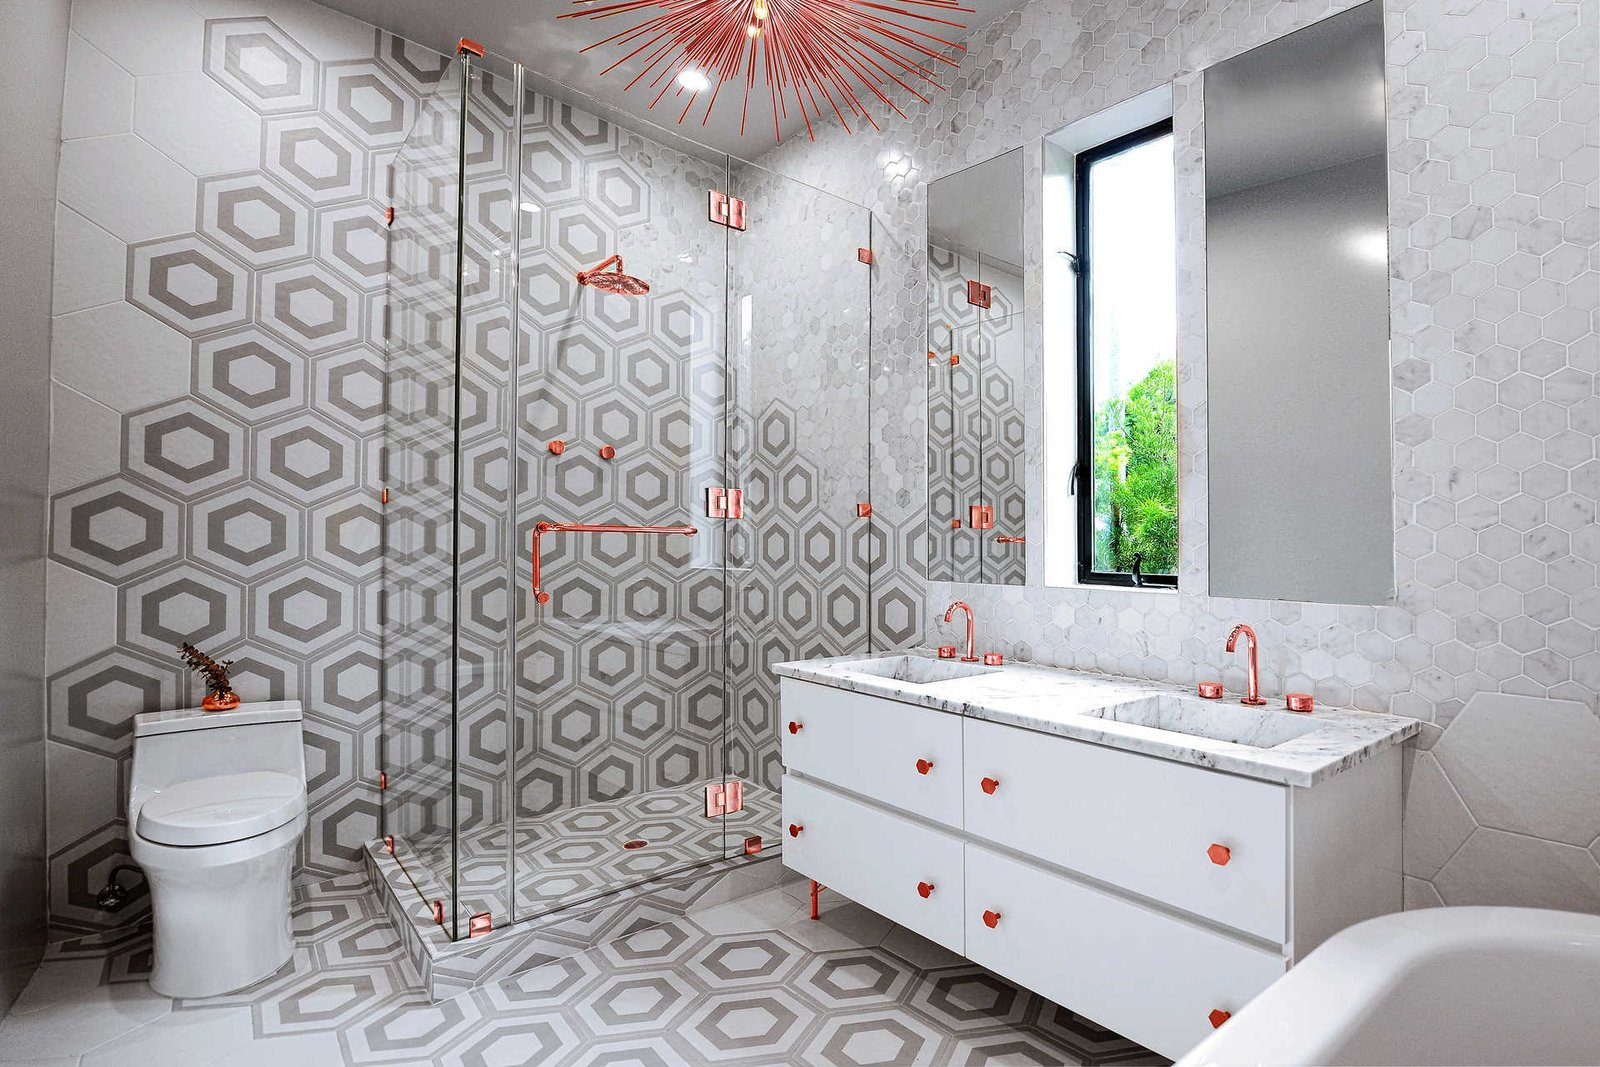 Tagged: Bath Room, Enclosed Shower, Ceiling Lighting, Drop In Sink, Corner Shower, Ceramic Tile Floor, Marble Counter, Ceramic Tile Wall, and Two Piece Toilet.  Italian Modernist Home by Zillow